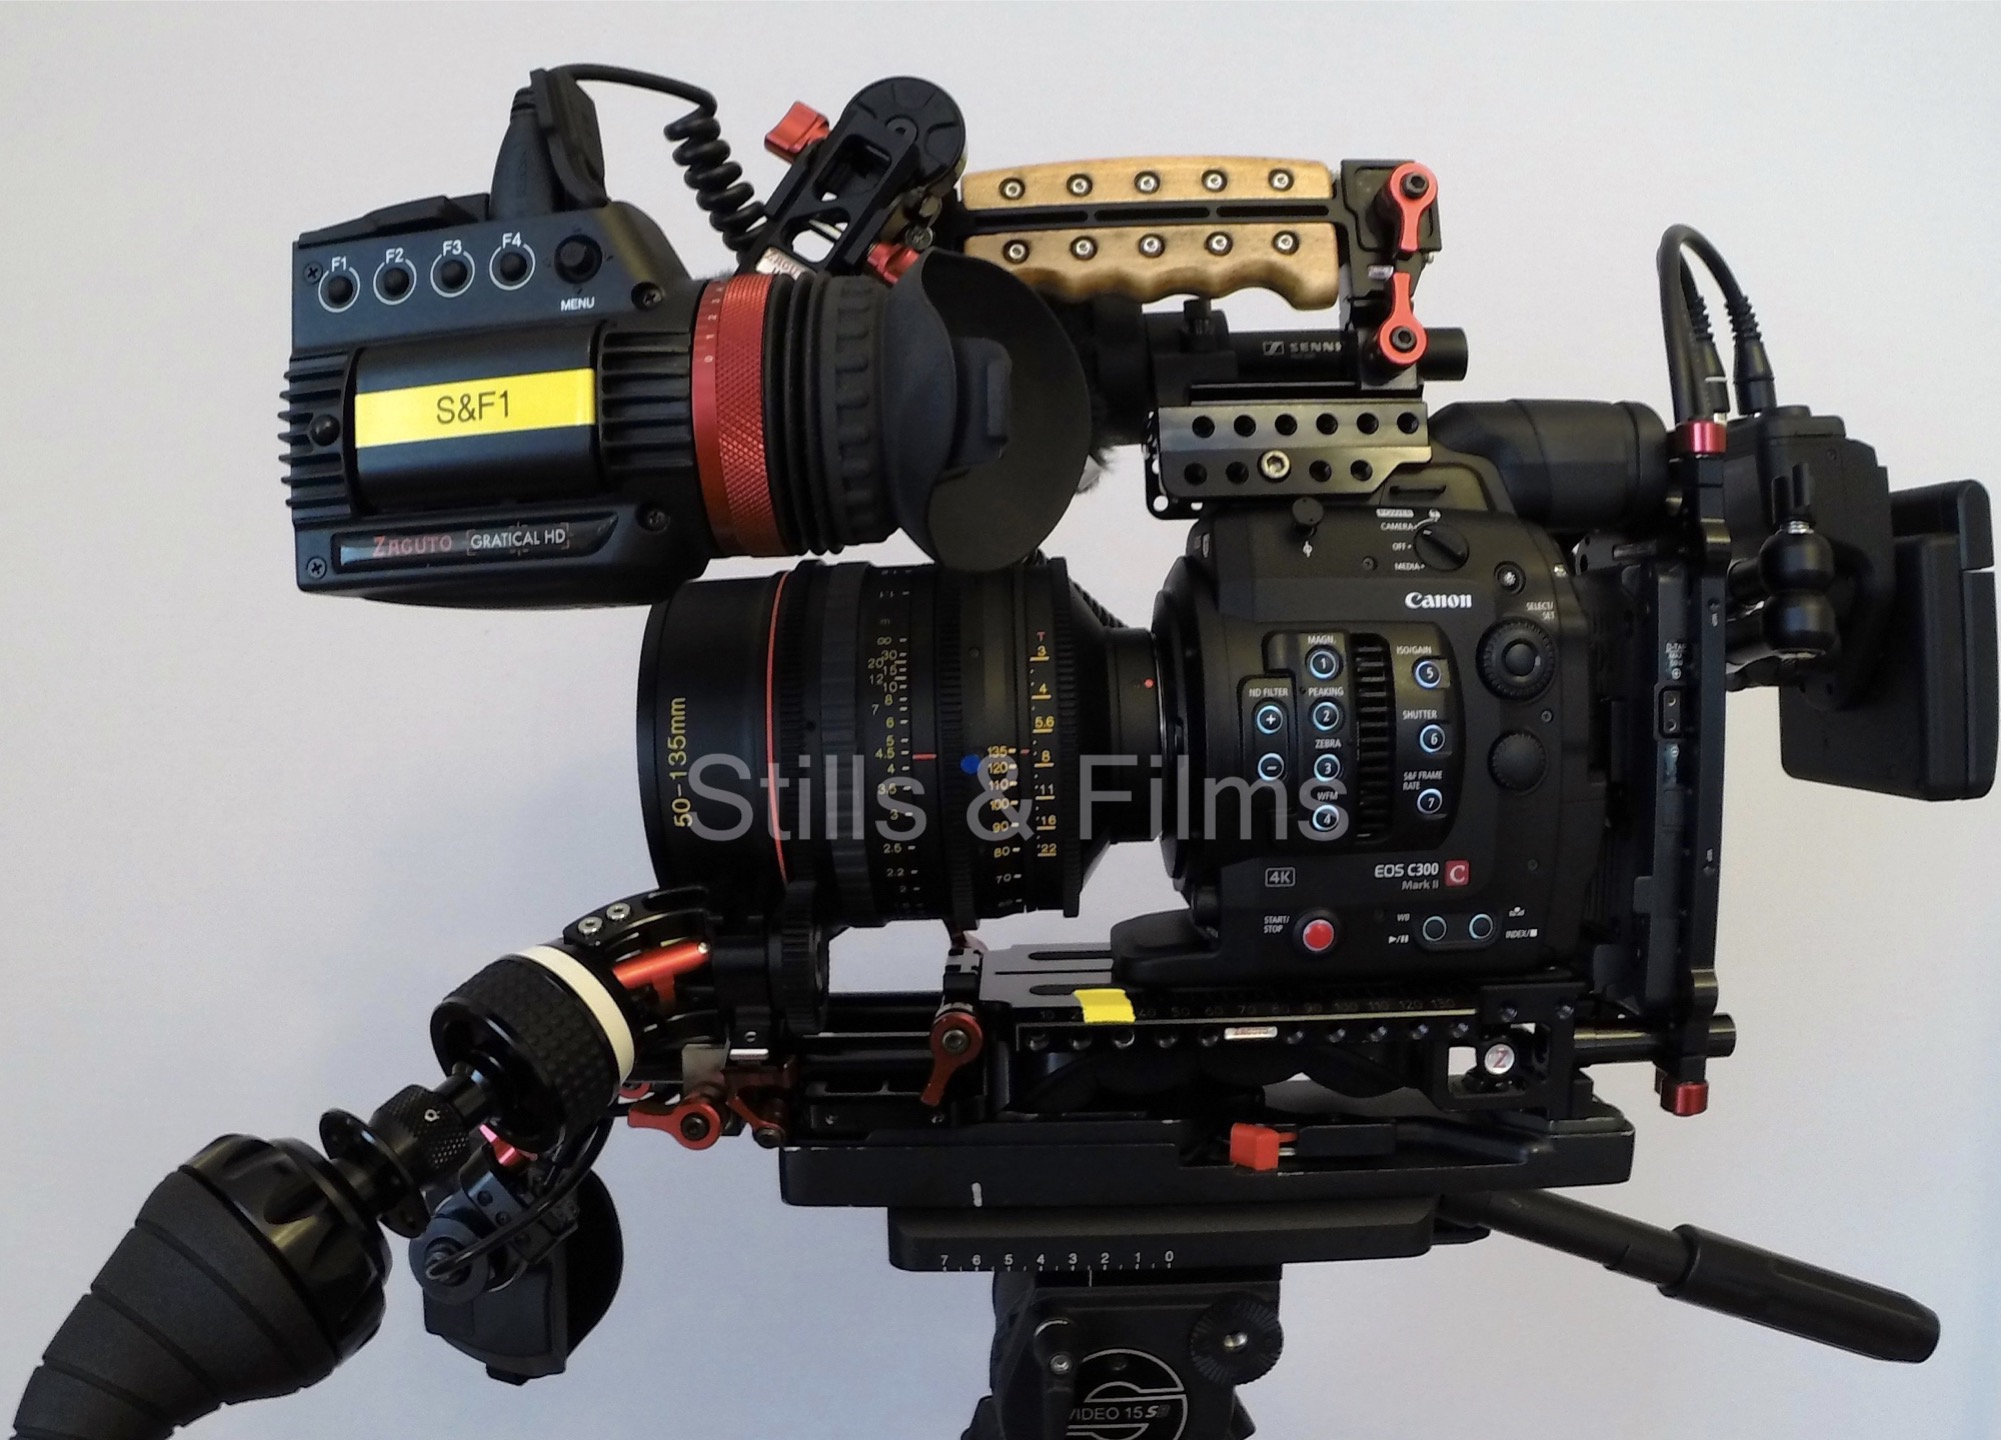 Canon C300 Mark II. 4K digital cinema camera